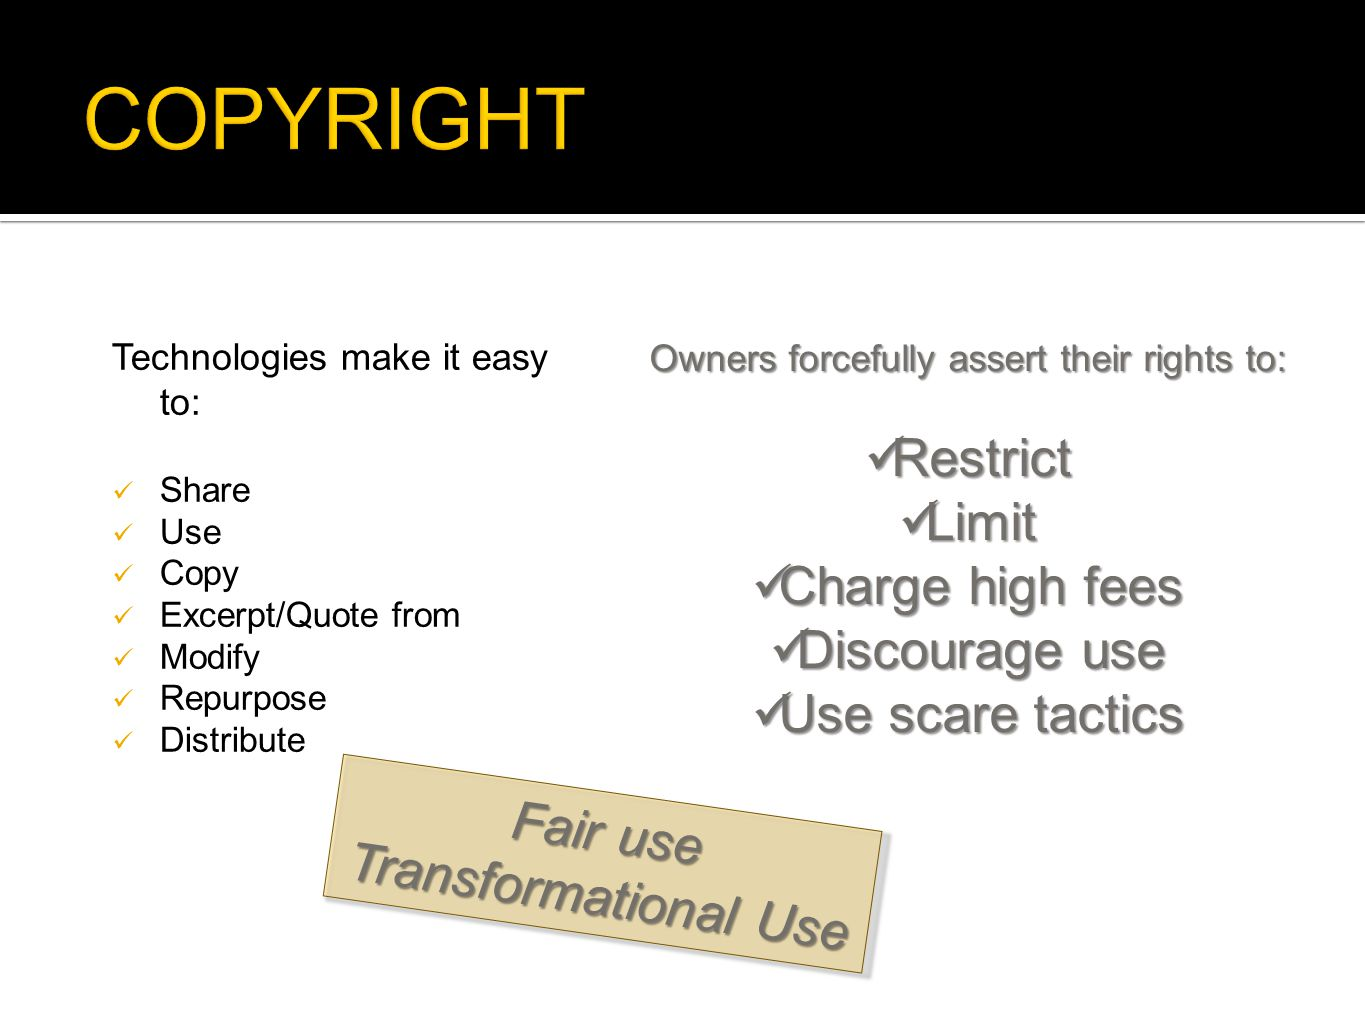 Technologies make it easy to:  Share  Use  Copy  Excerpt/Quote from  Modify  Repurpose  Distribute Owners forcefully assert their rights to:  Restrict  Limit  Charge high fees  Discourage use  Use scare tactics Fair use Transformational Use